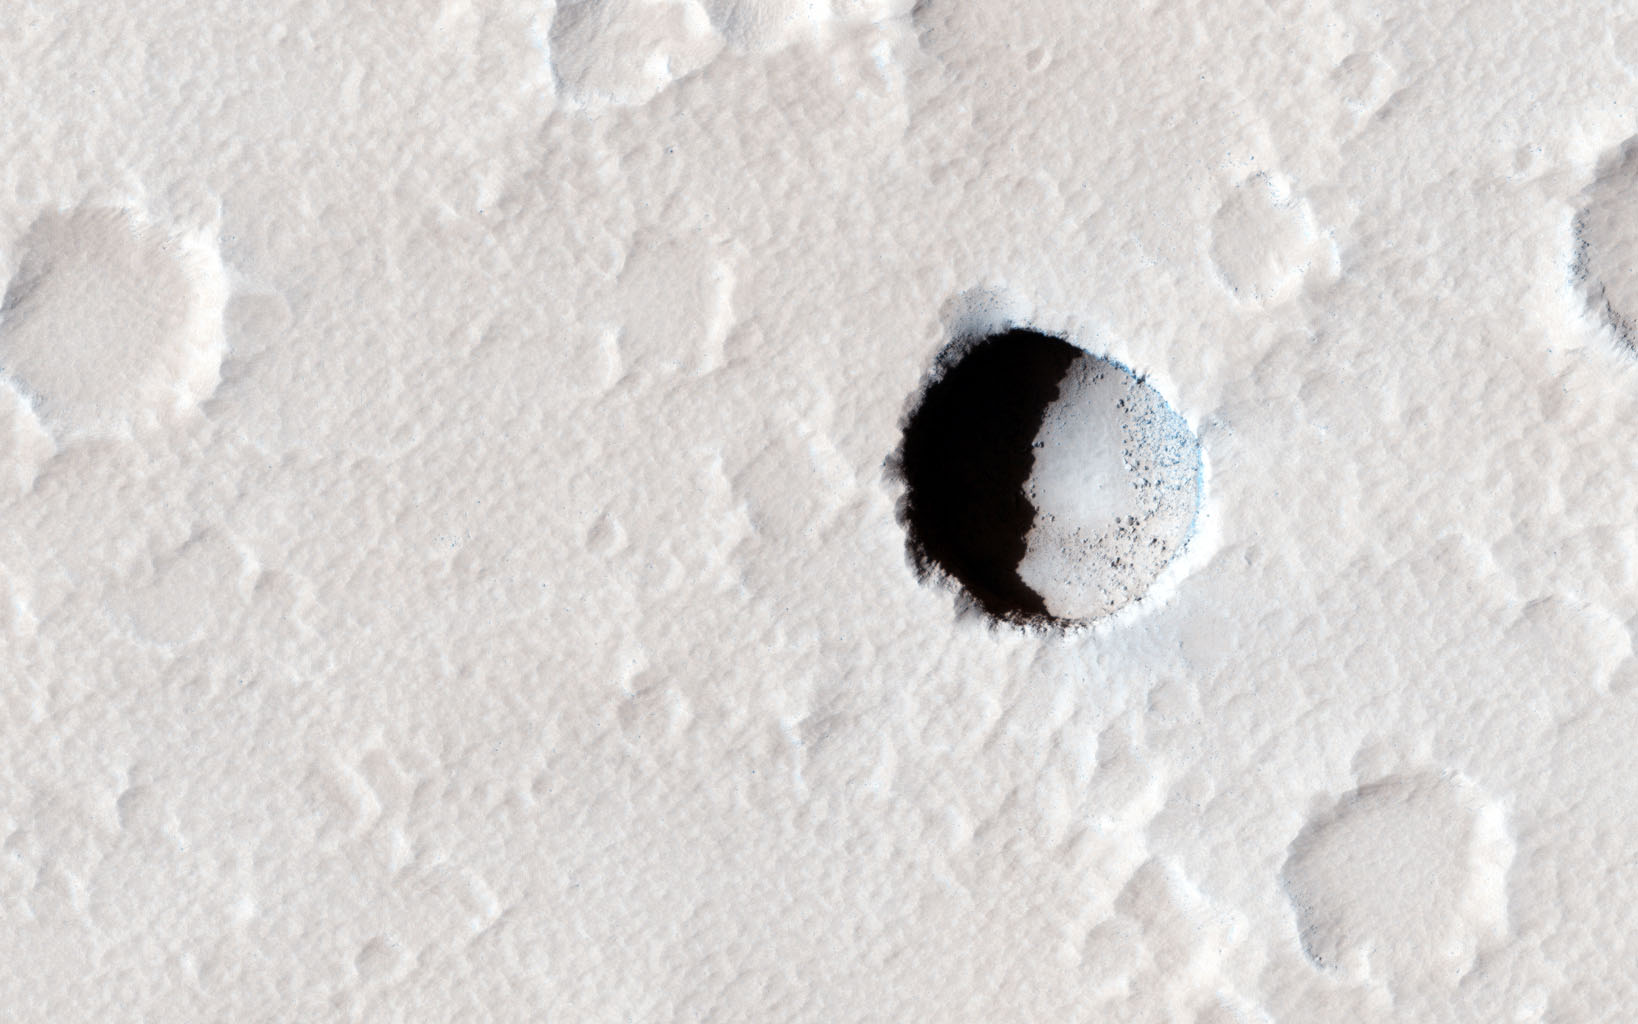 This image, taken by NASA's Mars Reconnaissance Orbiter spacecraft, is of an area on the lower southeastern flank of the volcano Elysium Mons. A small, dark pristine-appearing pit is clearly visible among the numerous small impact craters.